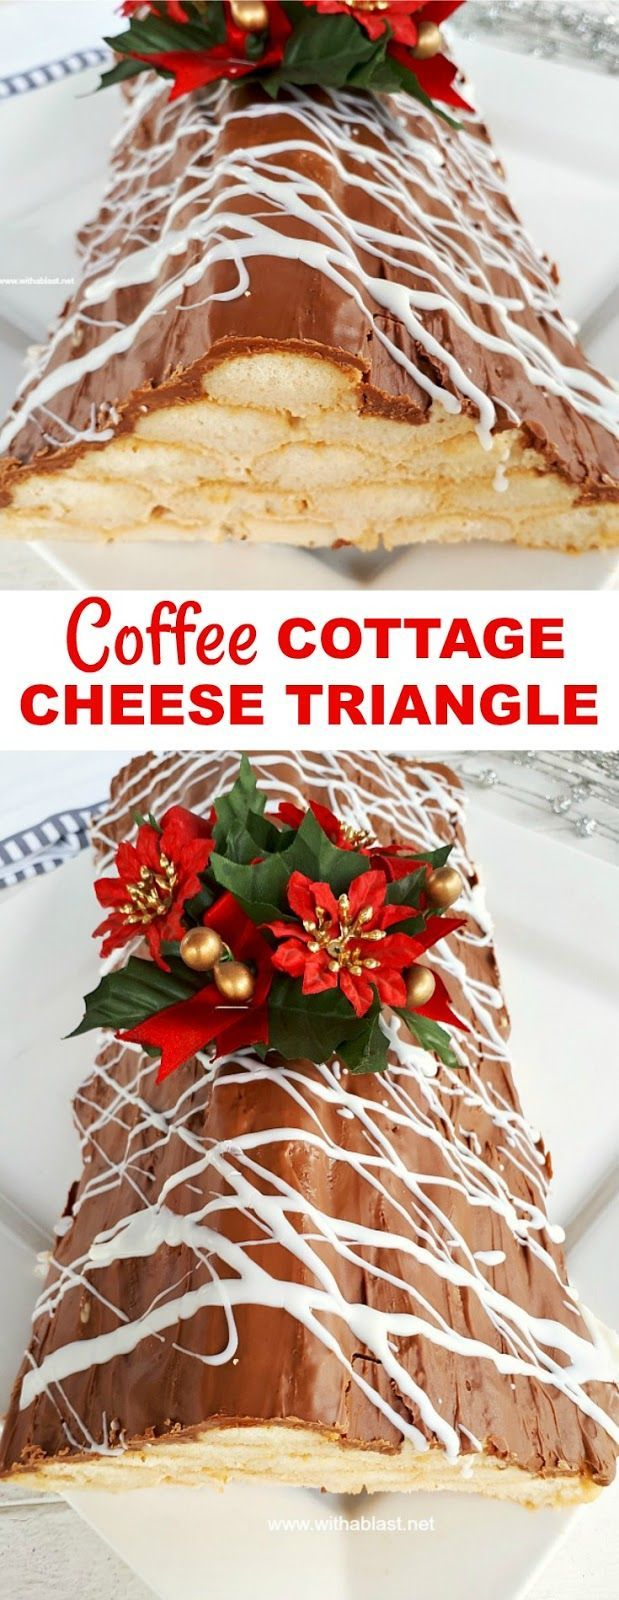 Coffee Cottage Cheese Triangle : withablast